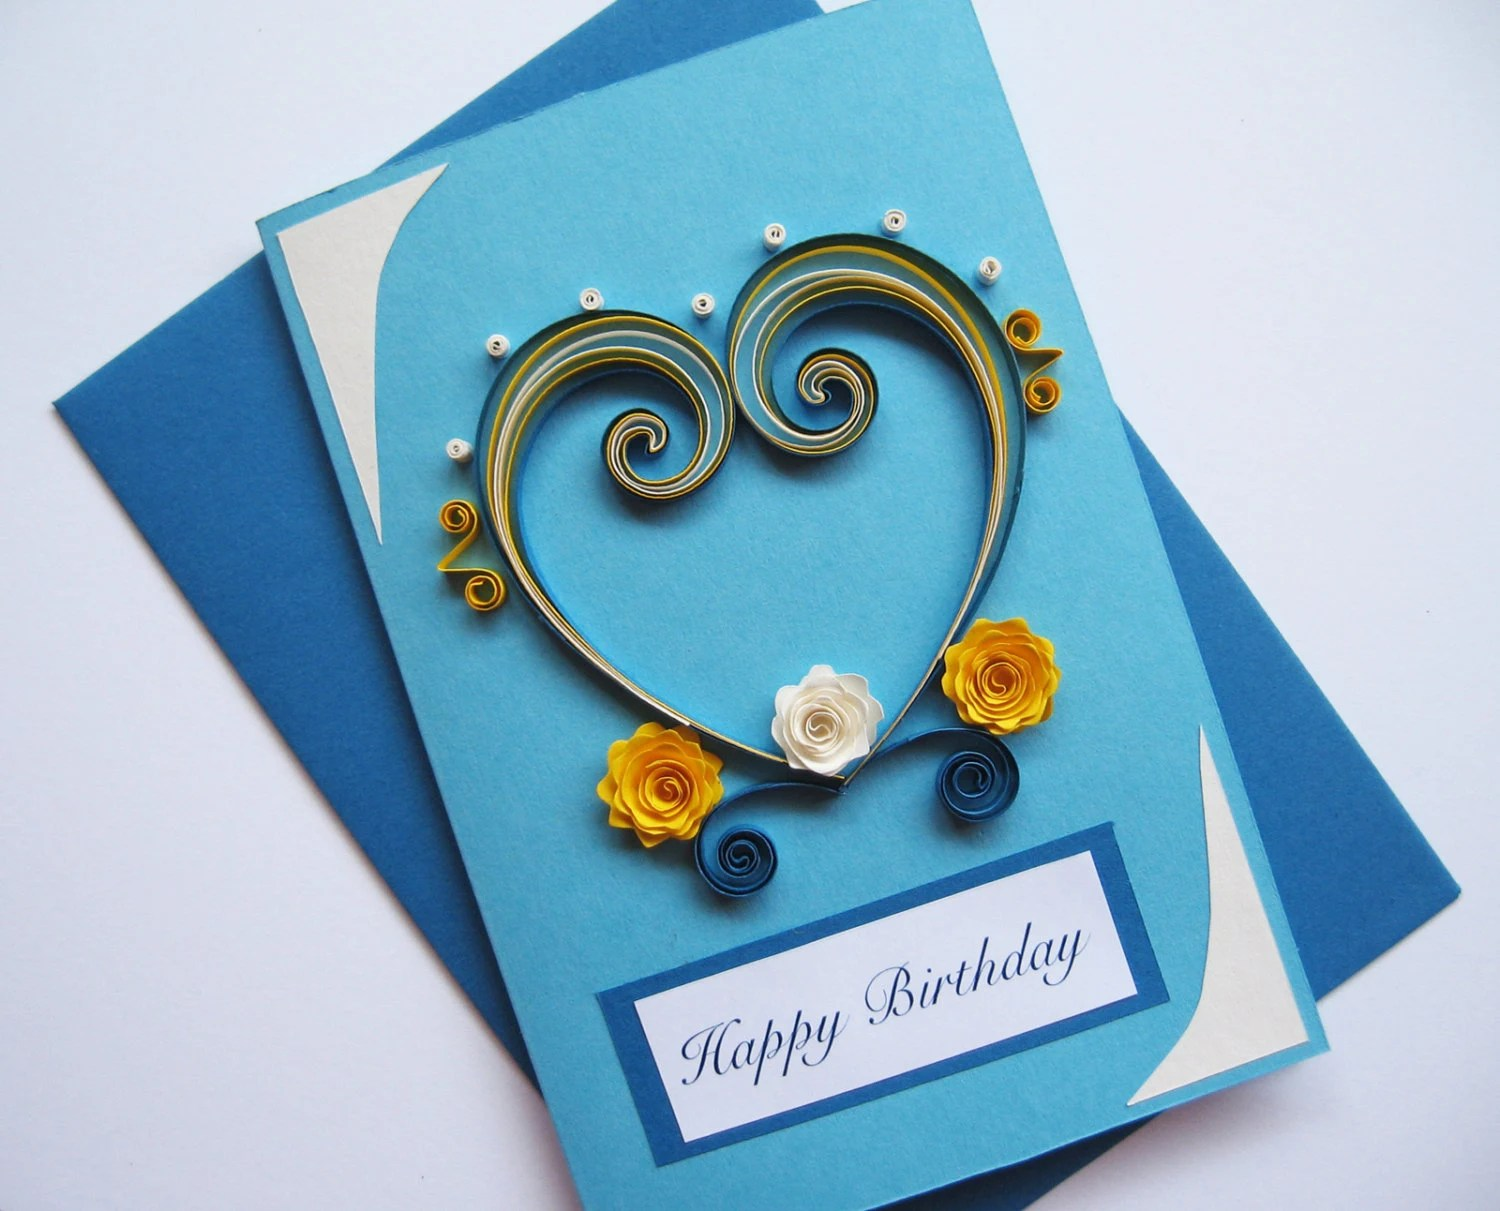 Carte Cadeau Wish Husband Birthday Card Valentine 39s Day Card Quilling